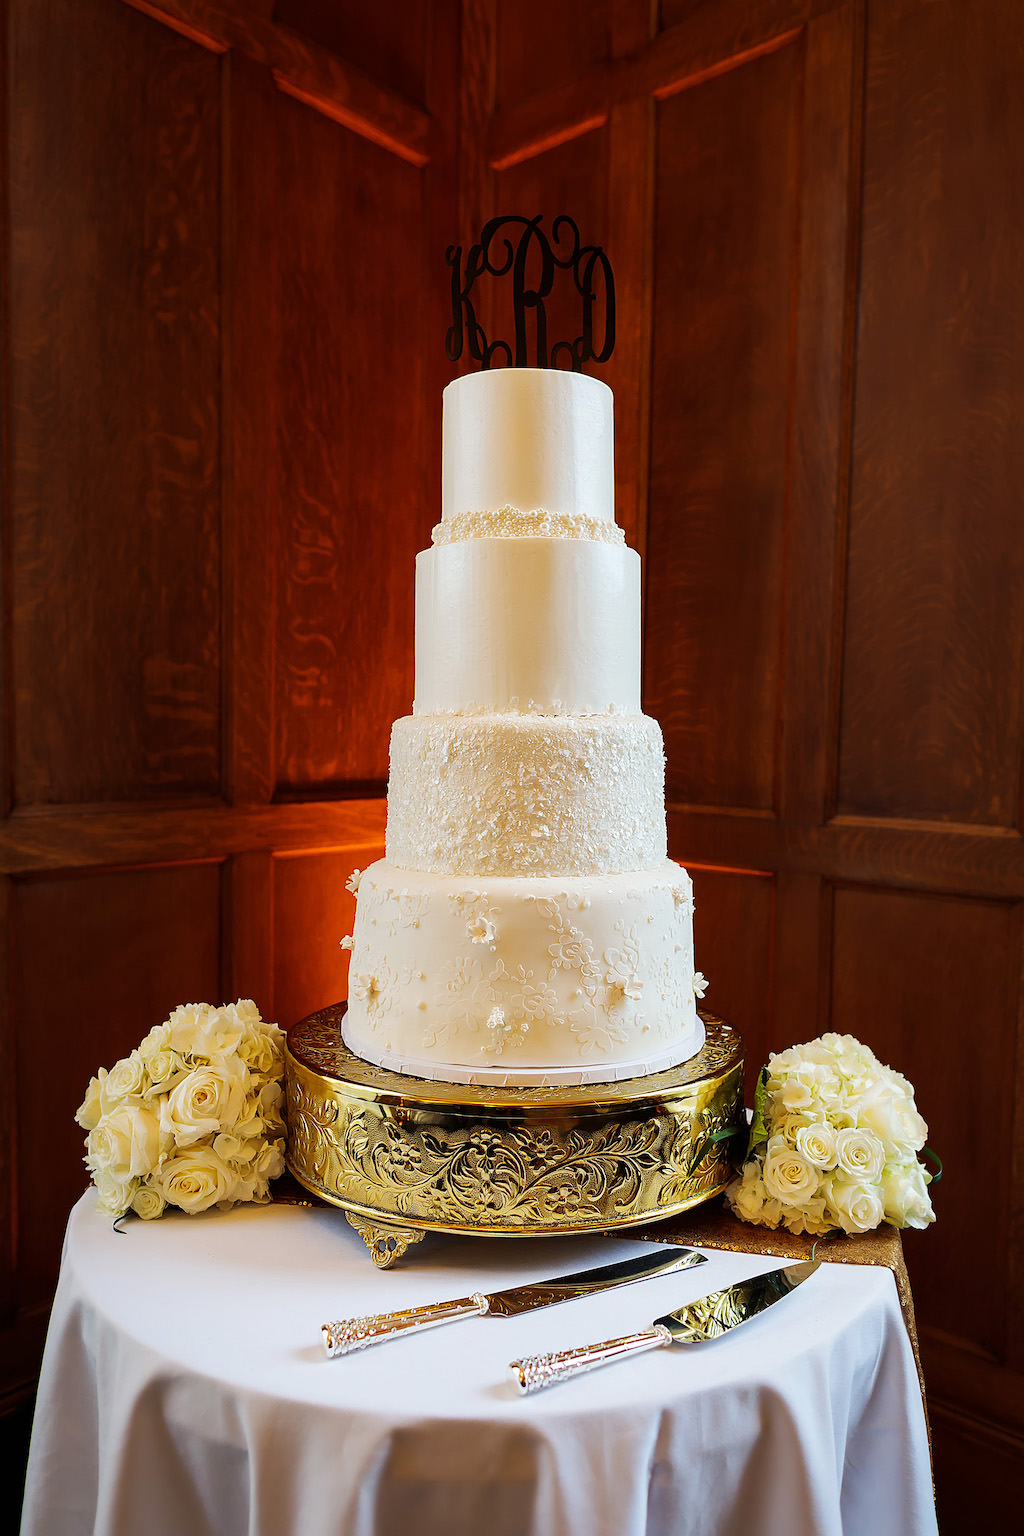 Four Tier Simple Elegant White Wedding Cake With Floral Accents On Vintage Gold Cake Stand And White Roses Bouquets Marry Me Tampa Bay Local Real Wedding Inspiration Vendor Recommendation